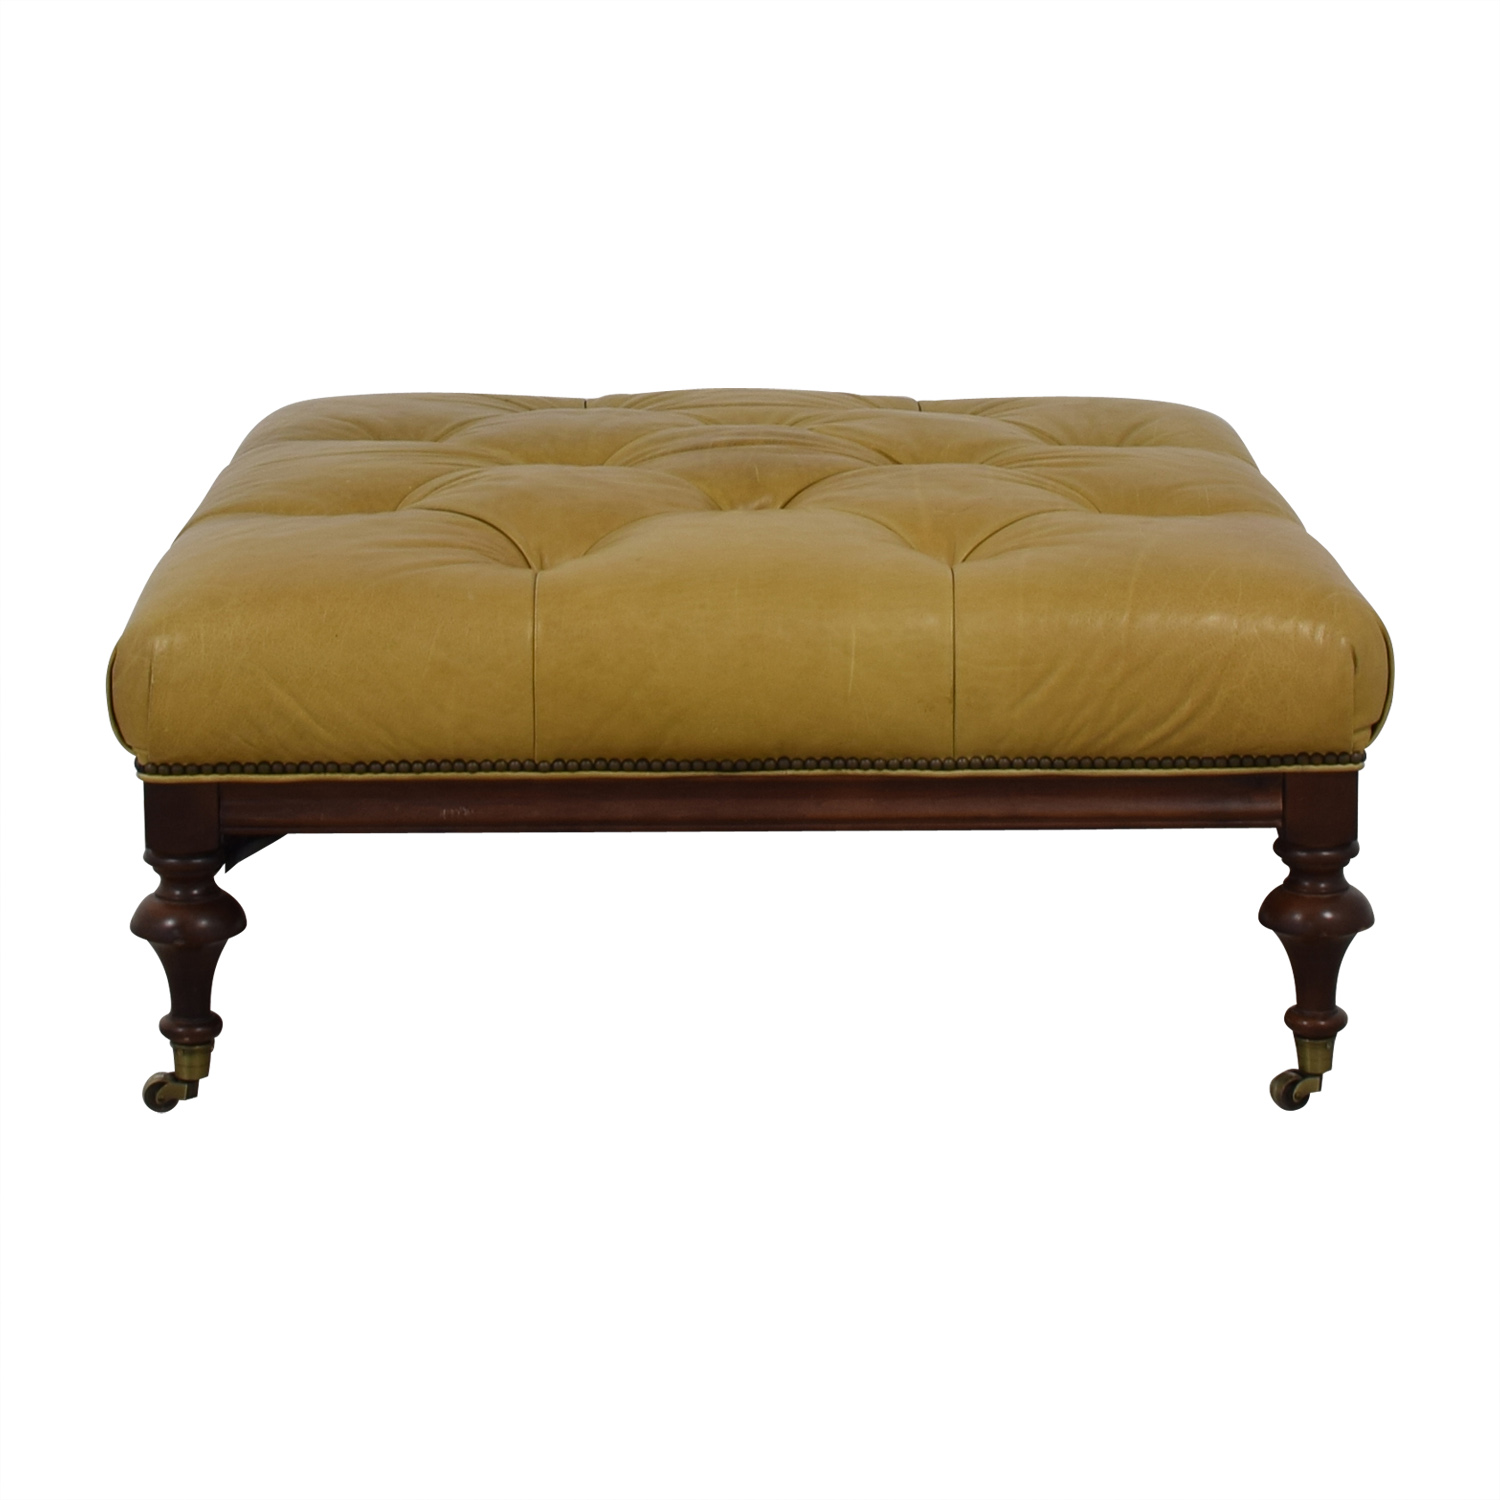 buy Beige Tufted Ottoman on Castors  Chairs